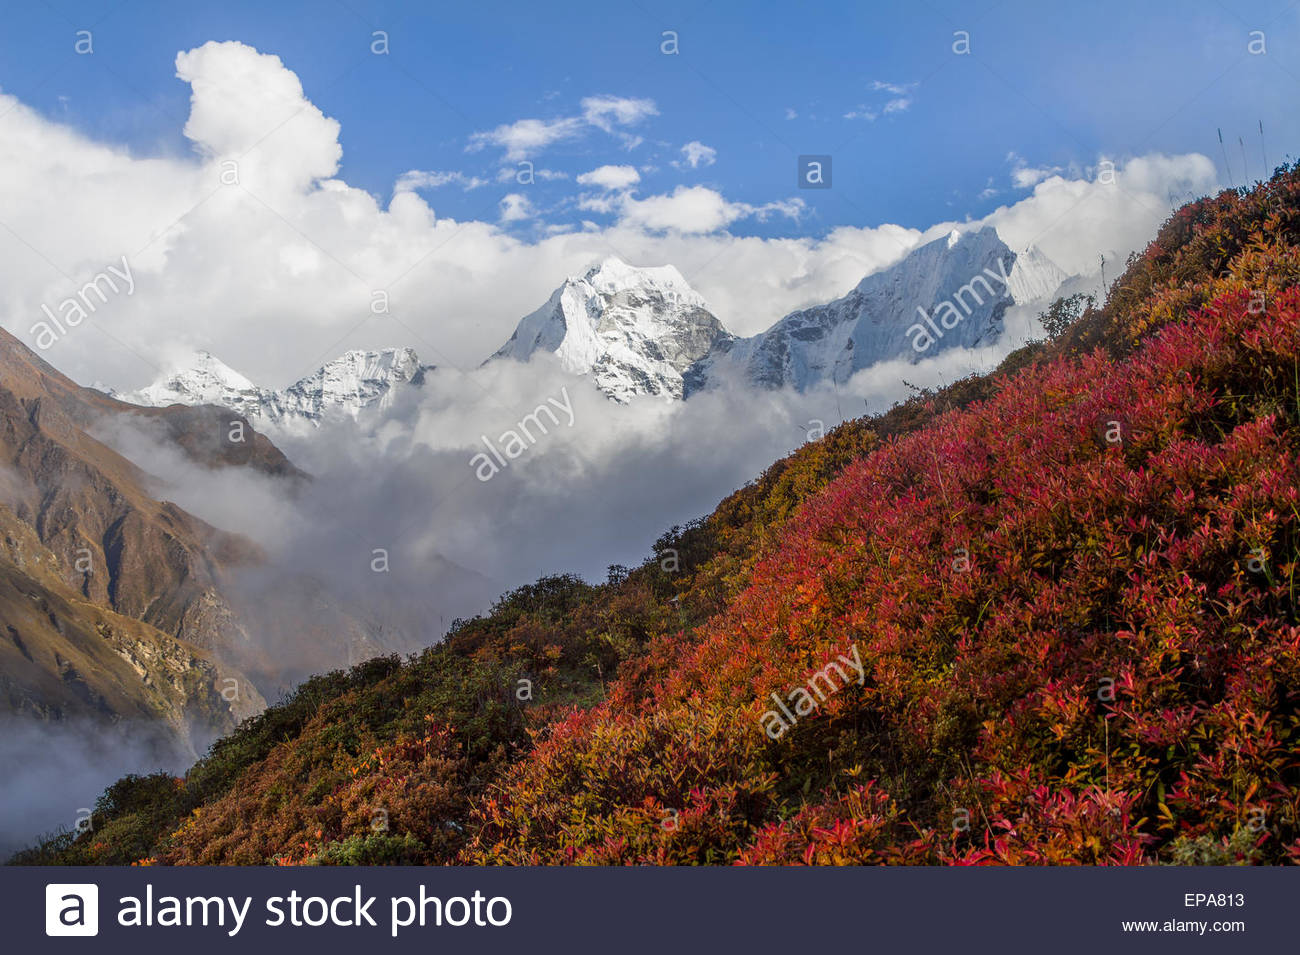 Sharp, jagged Himalayan peaks cut through a clearing storm as seen from Dole in Sagarmatha National Park, Nepal - Stock Image